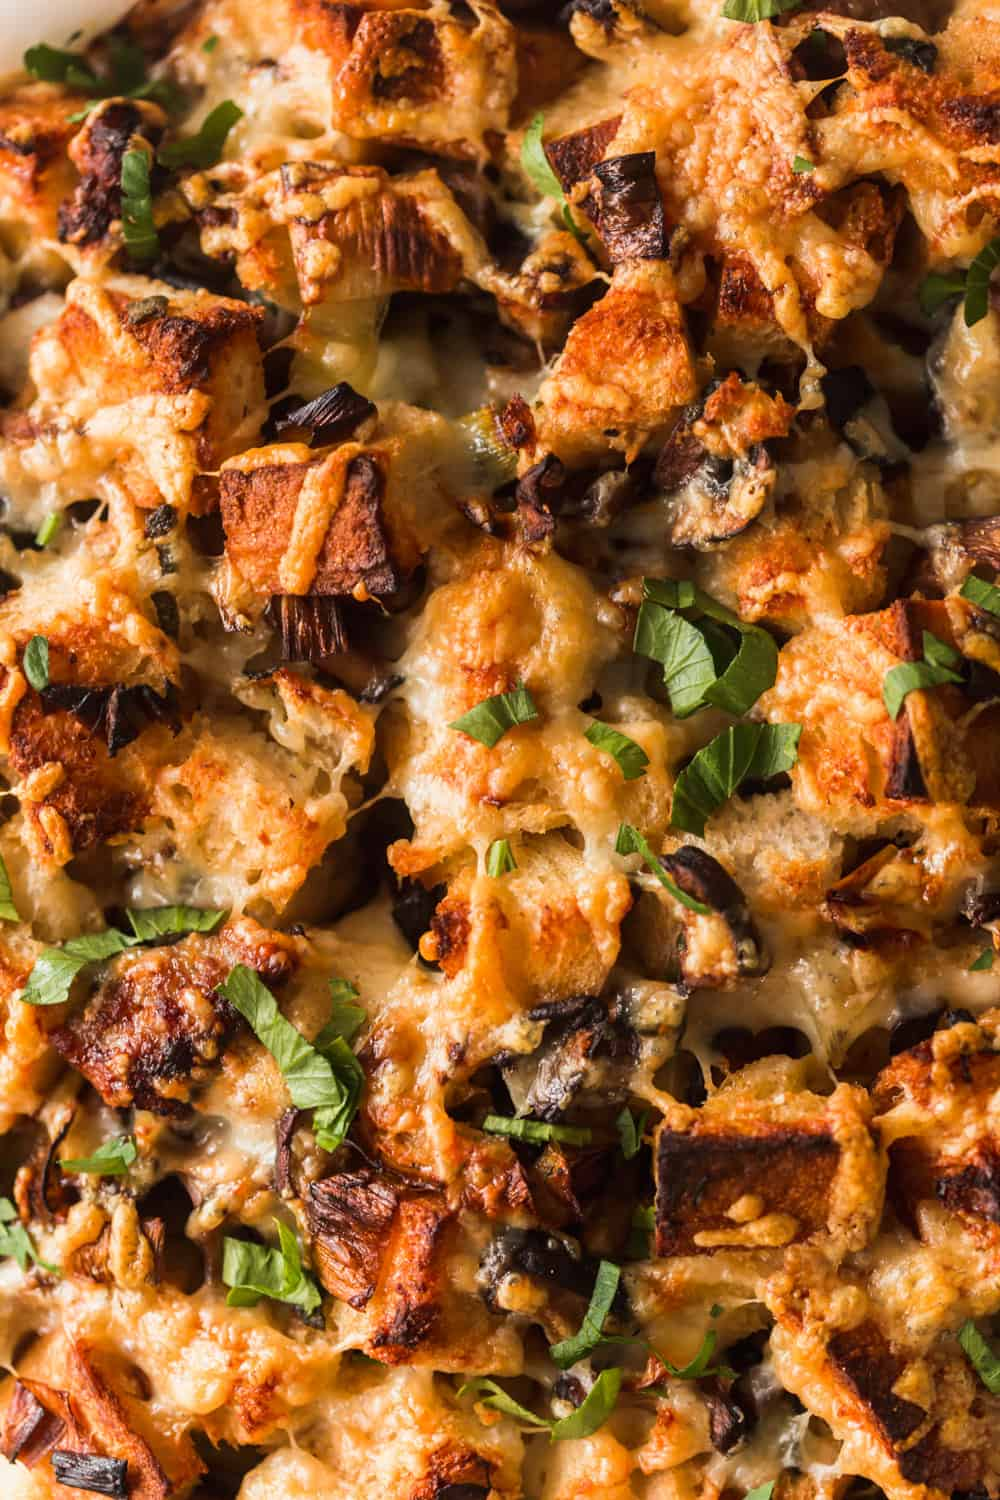 Close up of cooked stuffing with melted cheese and green herbs on top